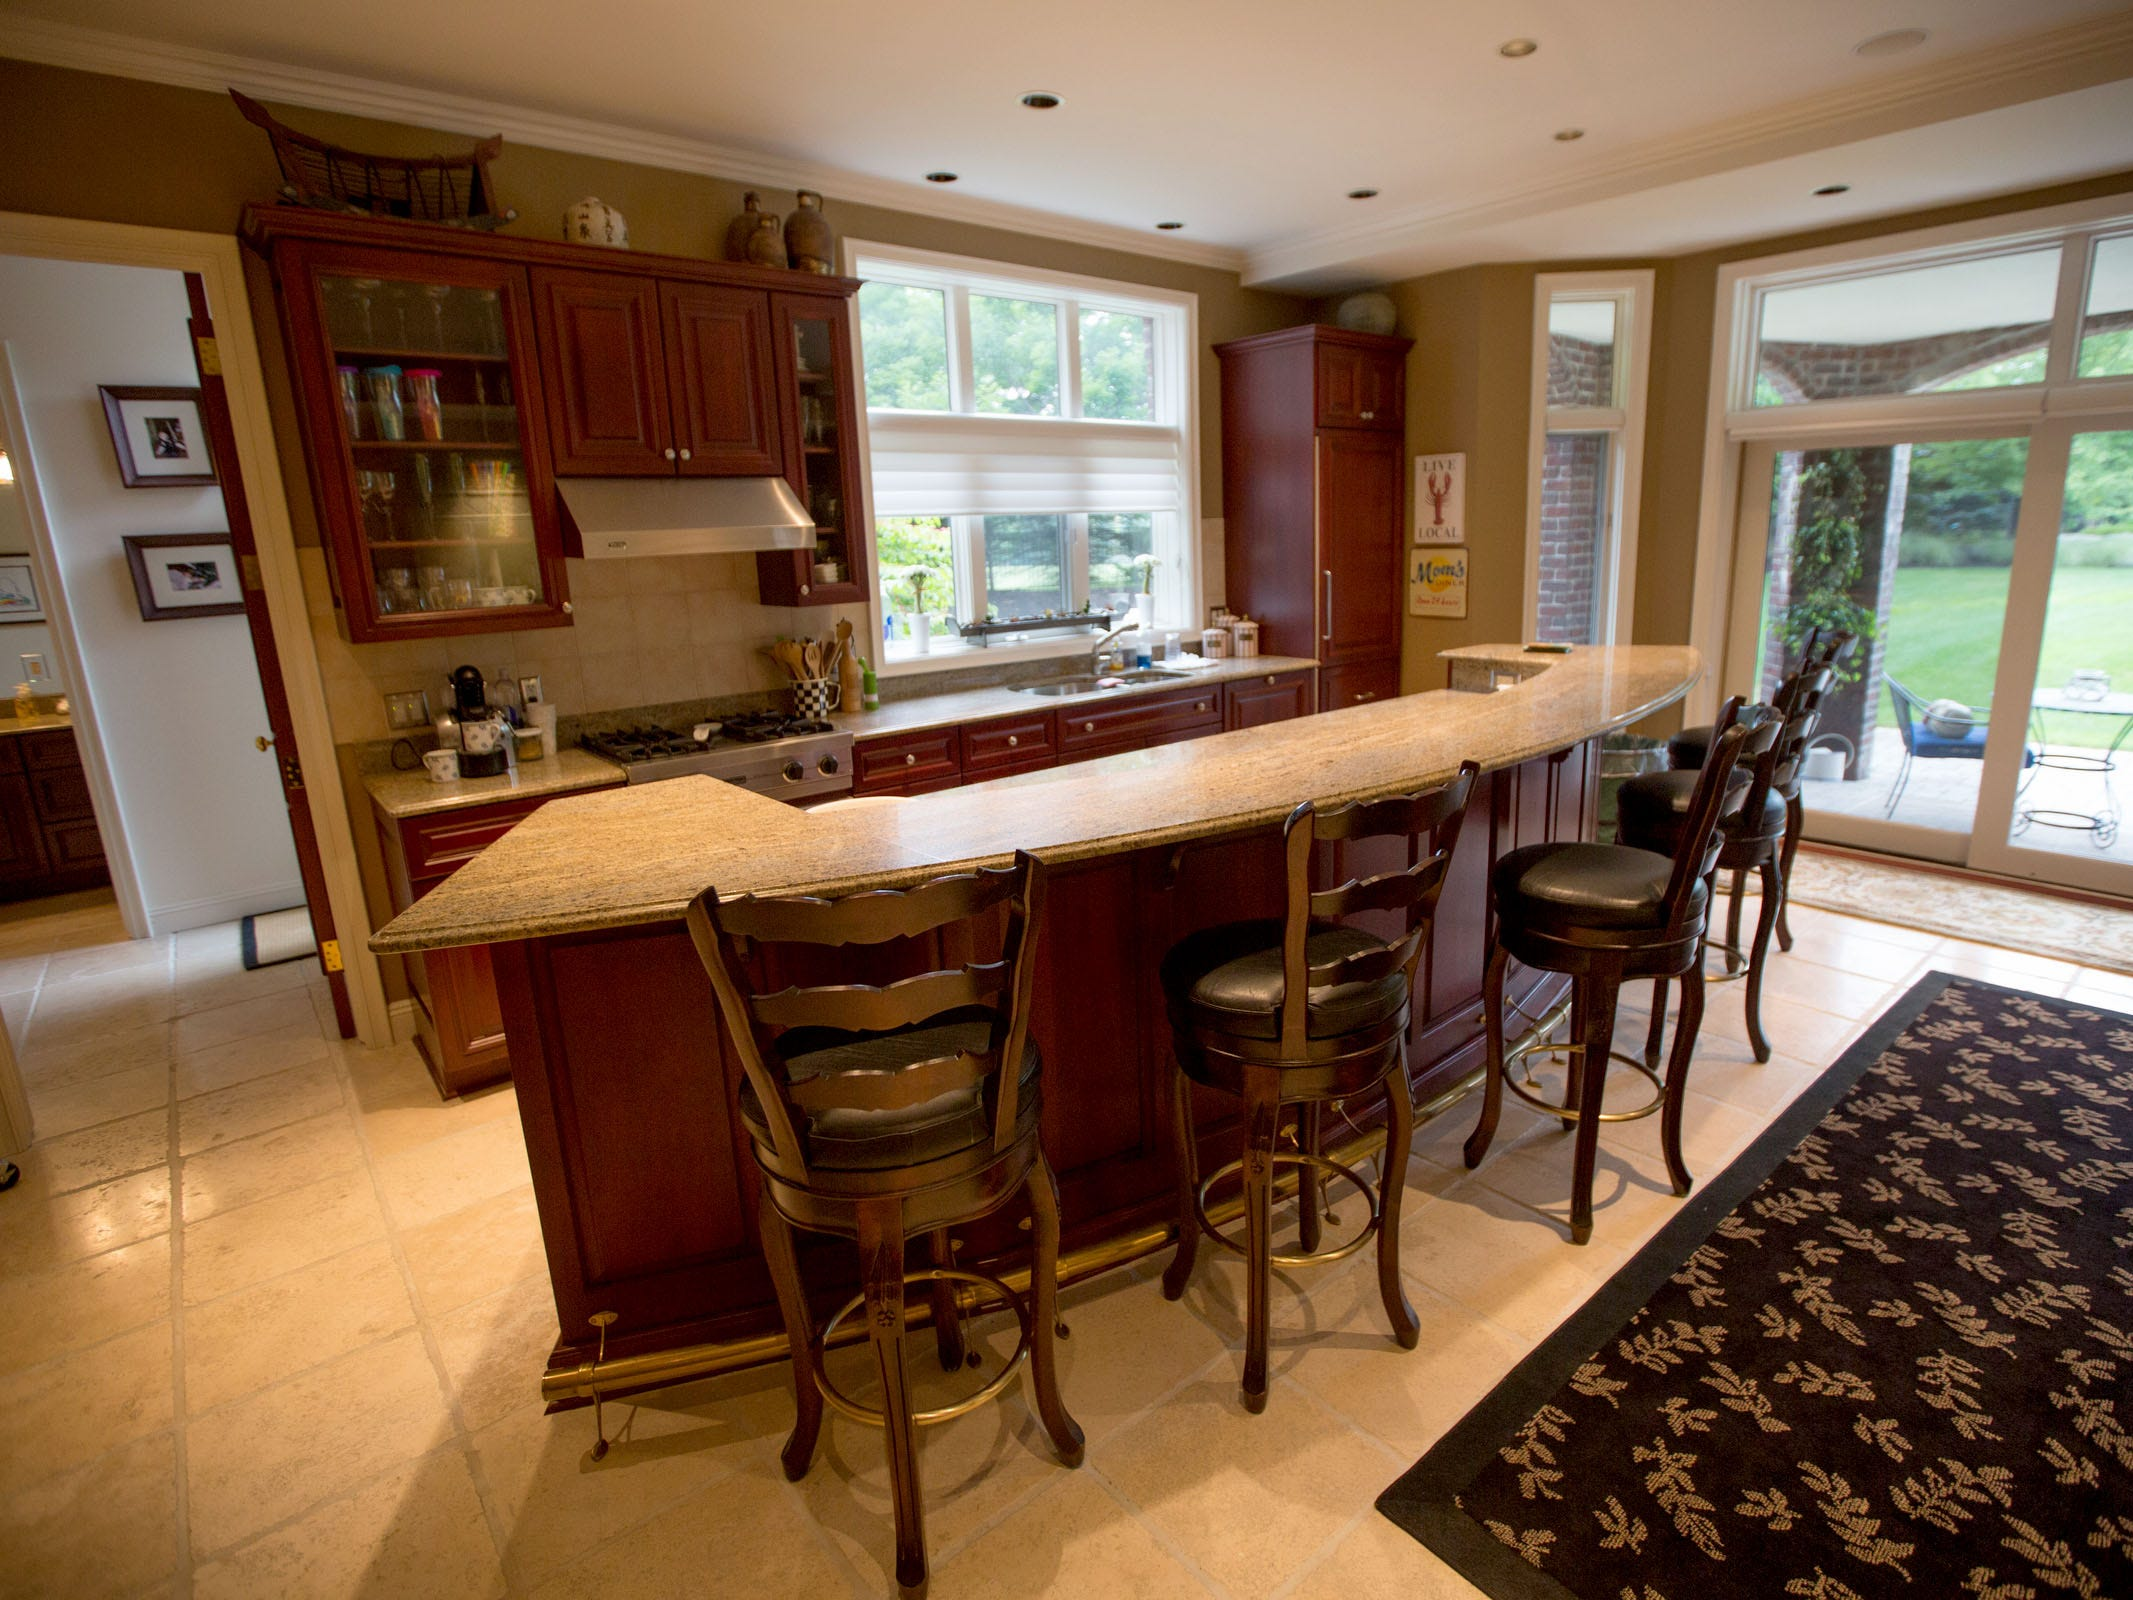 A second full kitchen with Viking appliances is part of the lower level party space.